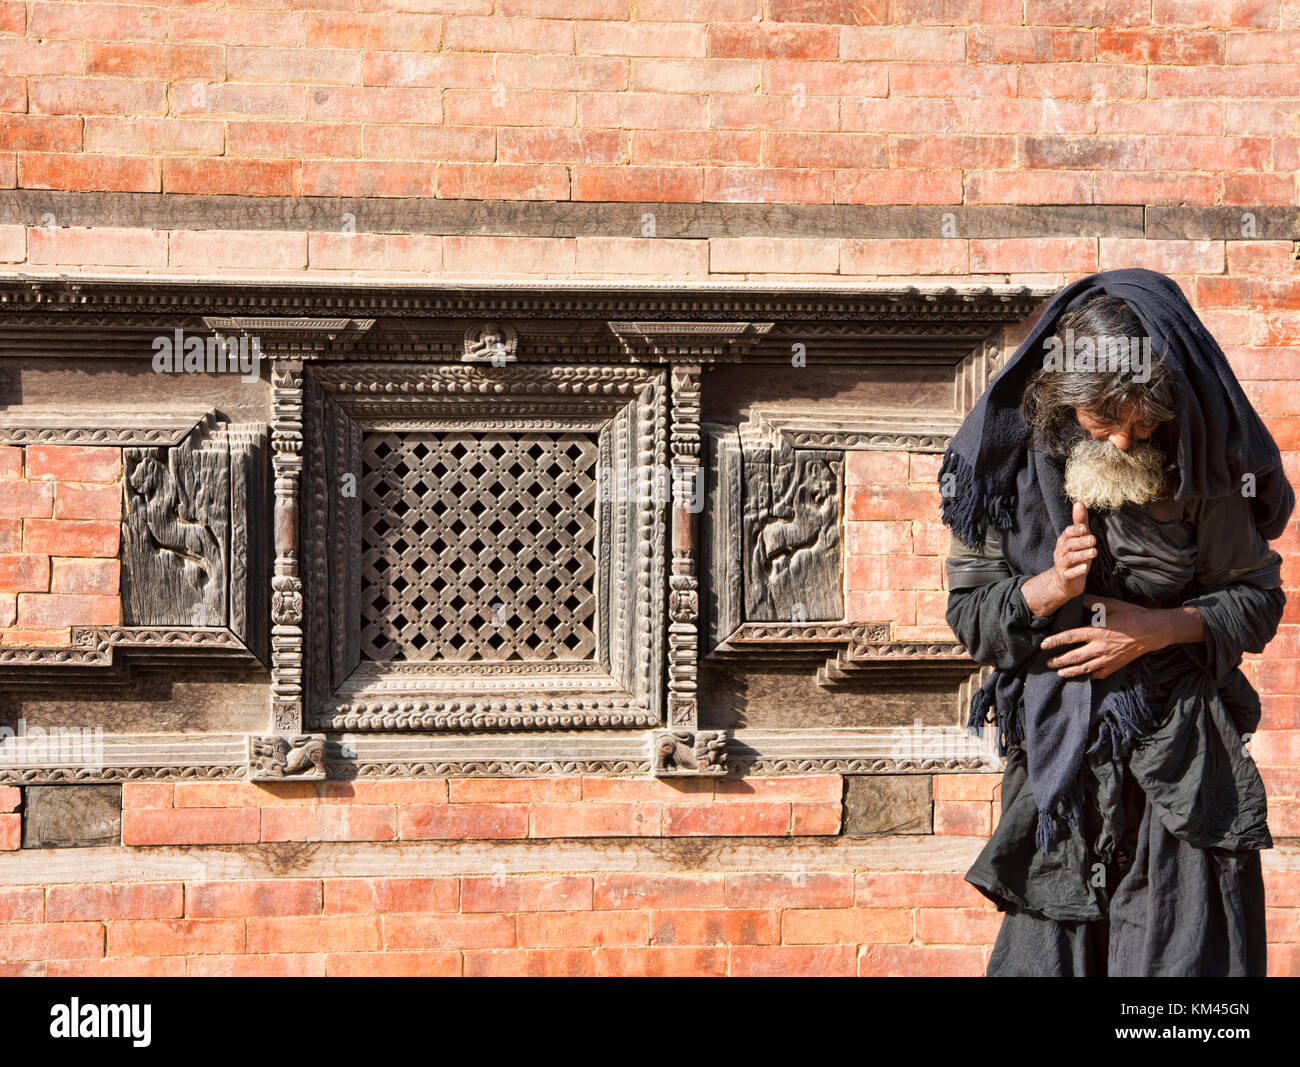 Homeless man in the UNESCO temples of Bhaktapur, Nepal - Stock Image